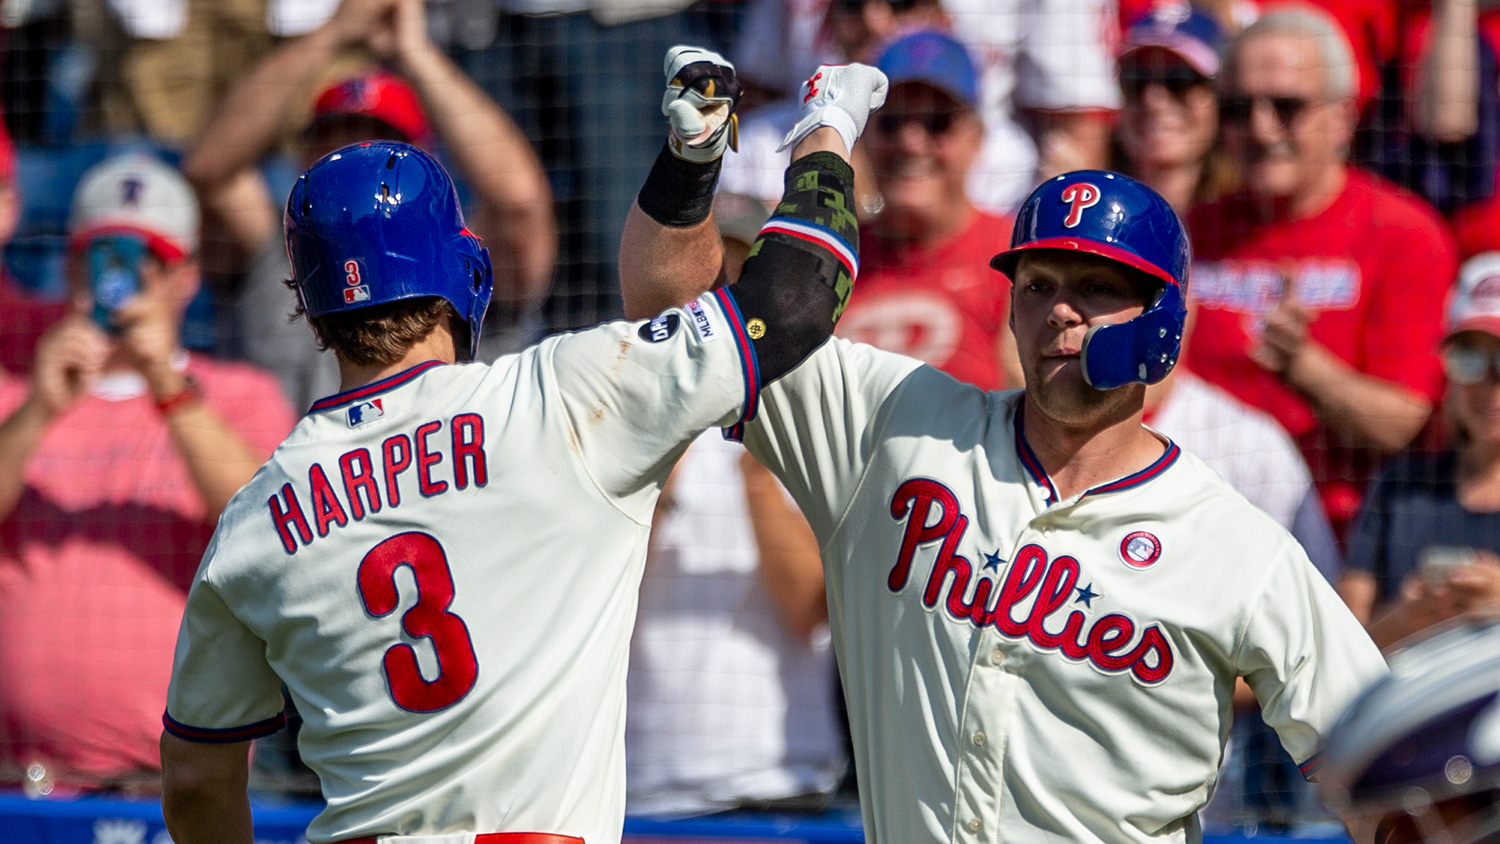 Phillies' Bryce Harper crushed 2 home runs and 6 RBI in the Phillies' series sweep over the Colorado Rockies over the weekend.